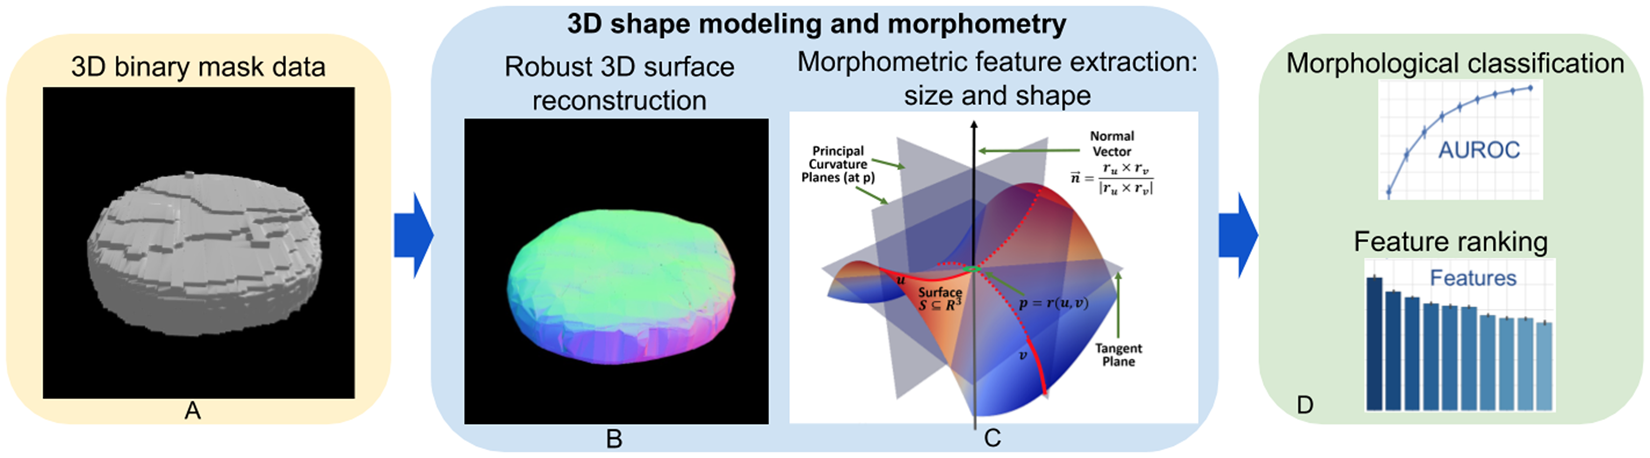 3D Shape Modeling for Cell Nuclear Morphological Analysis